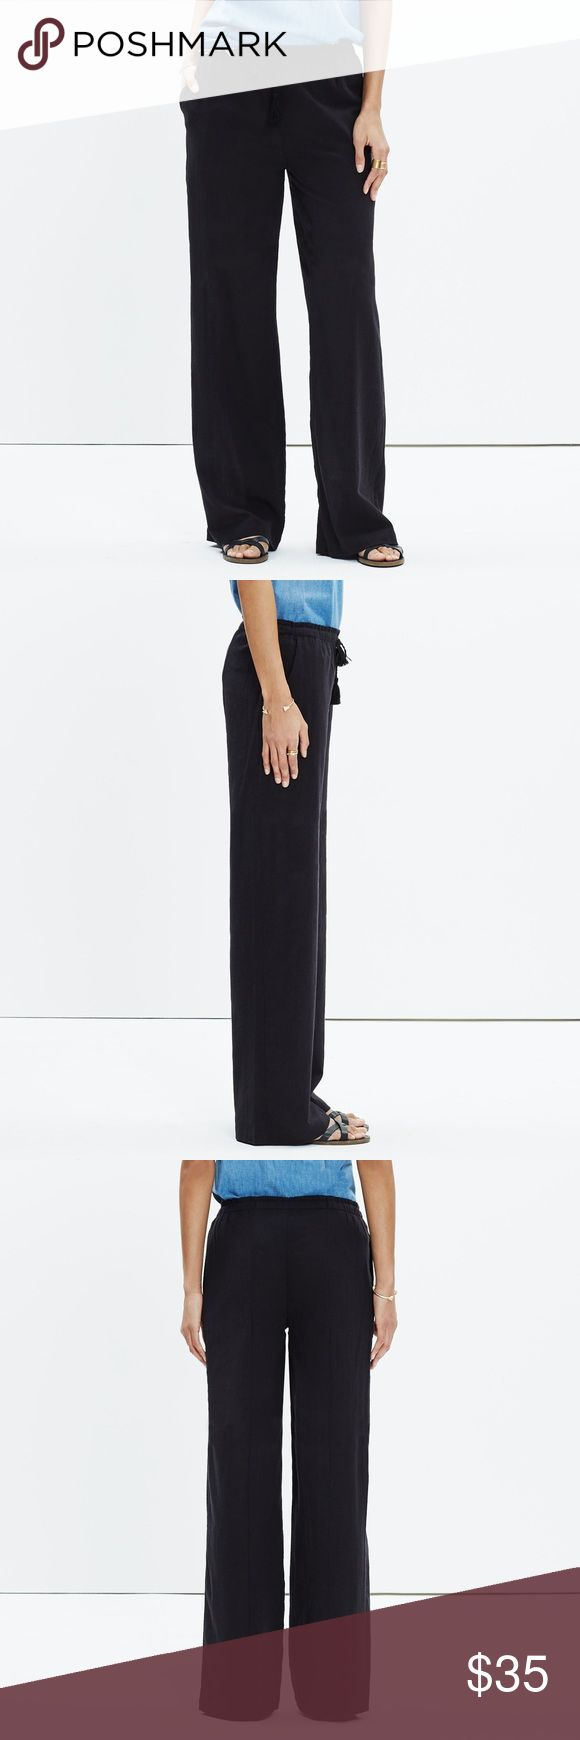 Madewell Maldives Cover-Up Pant XXS GUC. Perfect summer pant that can be worn as a coverup or as a light pant! Not see-thru! Super chic and comfortable. In great condition and fits TTS. 🚫Trades 🚫PayPal   Breezy wide-leg pants in crinkled cotton. Inspired by glamorous '70s resort style, these work as well with a bikini as they do with a half-tucked tee. Madewell Pants